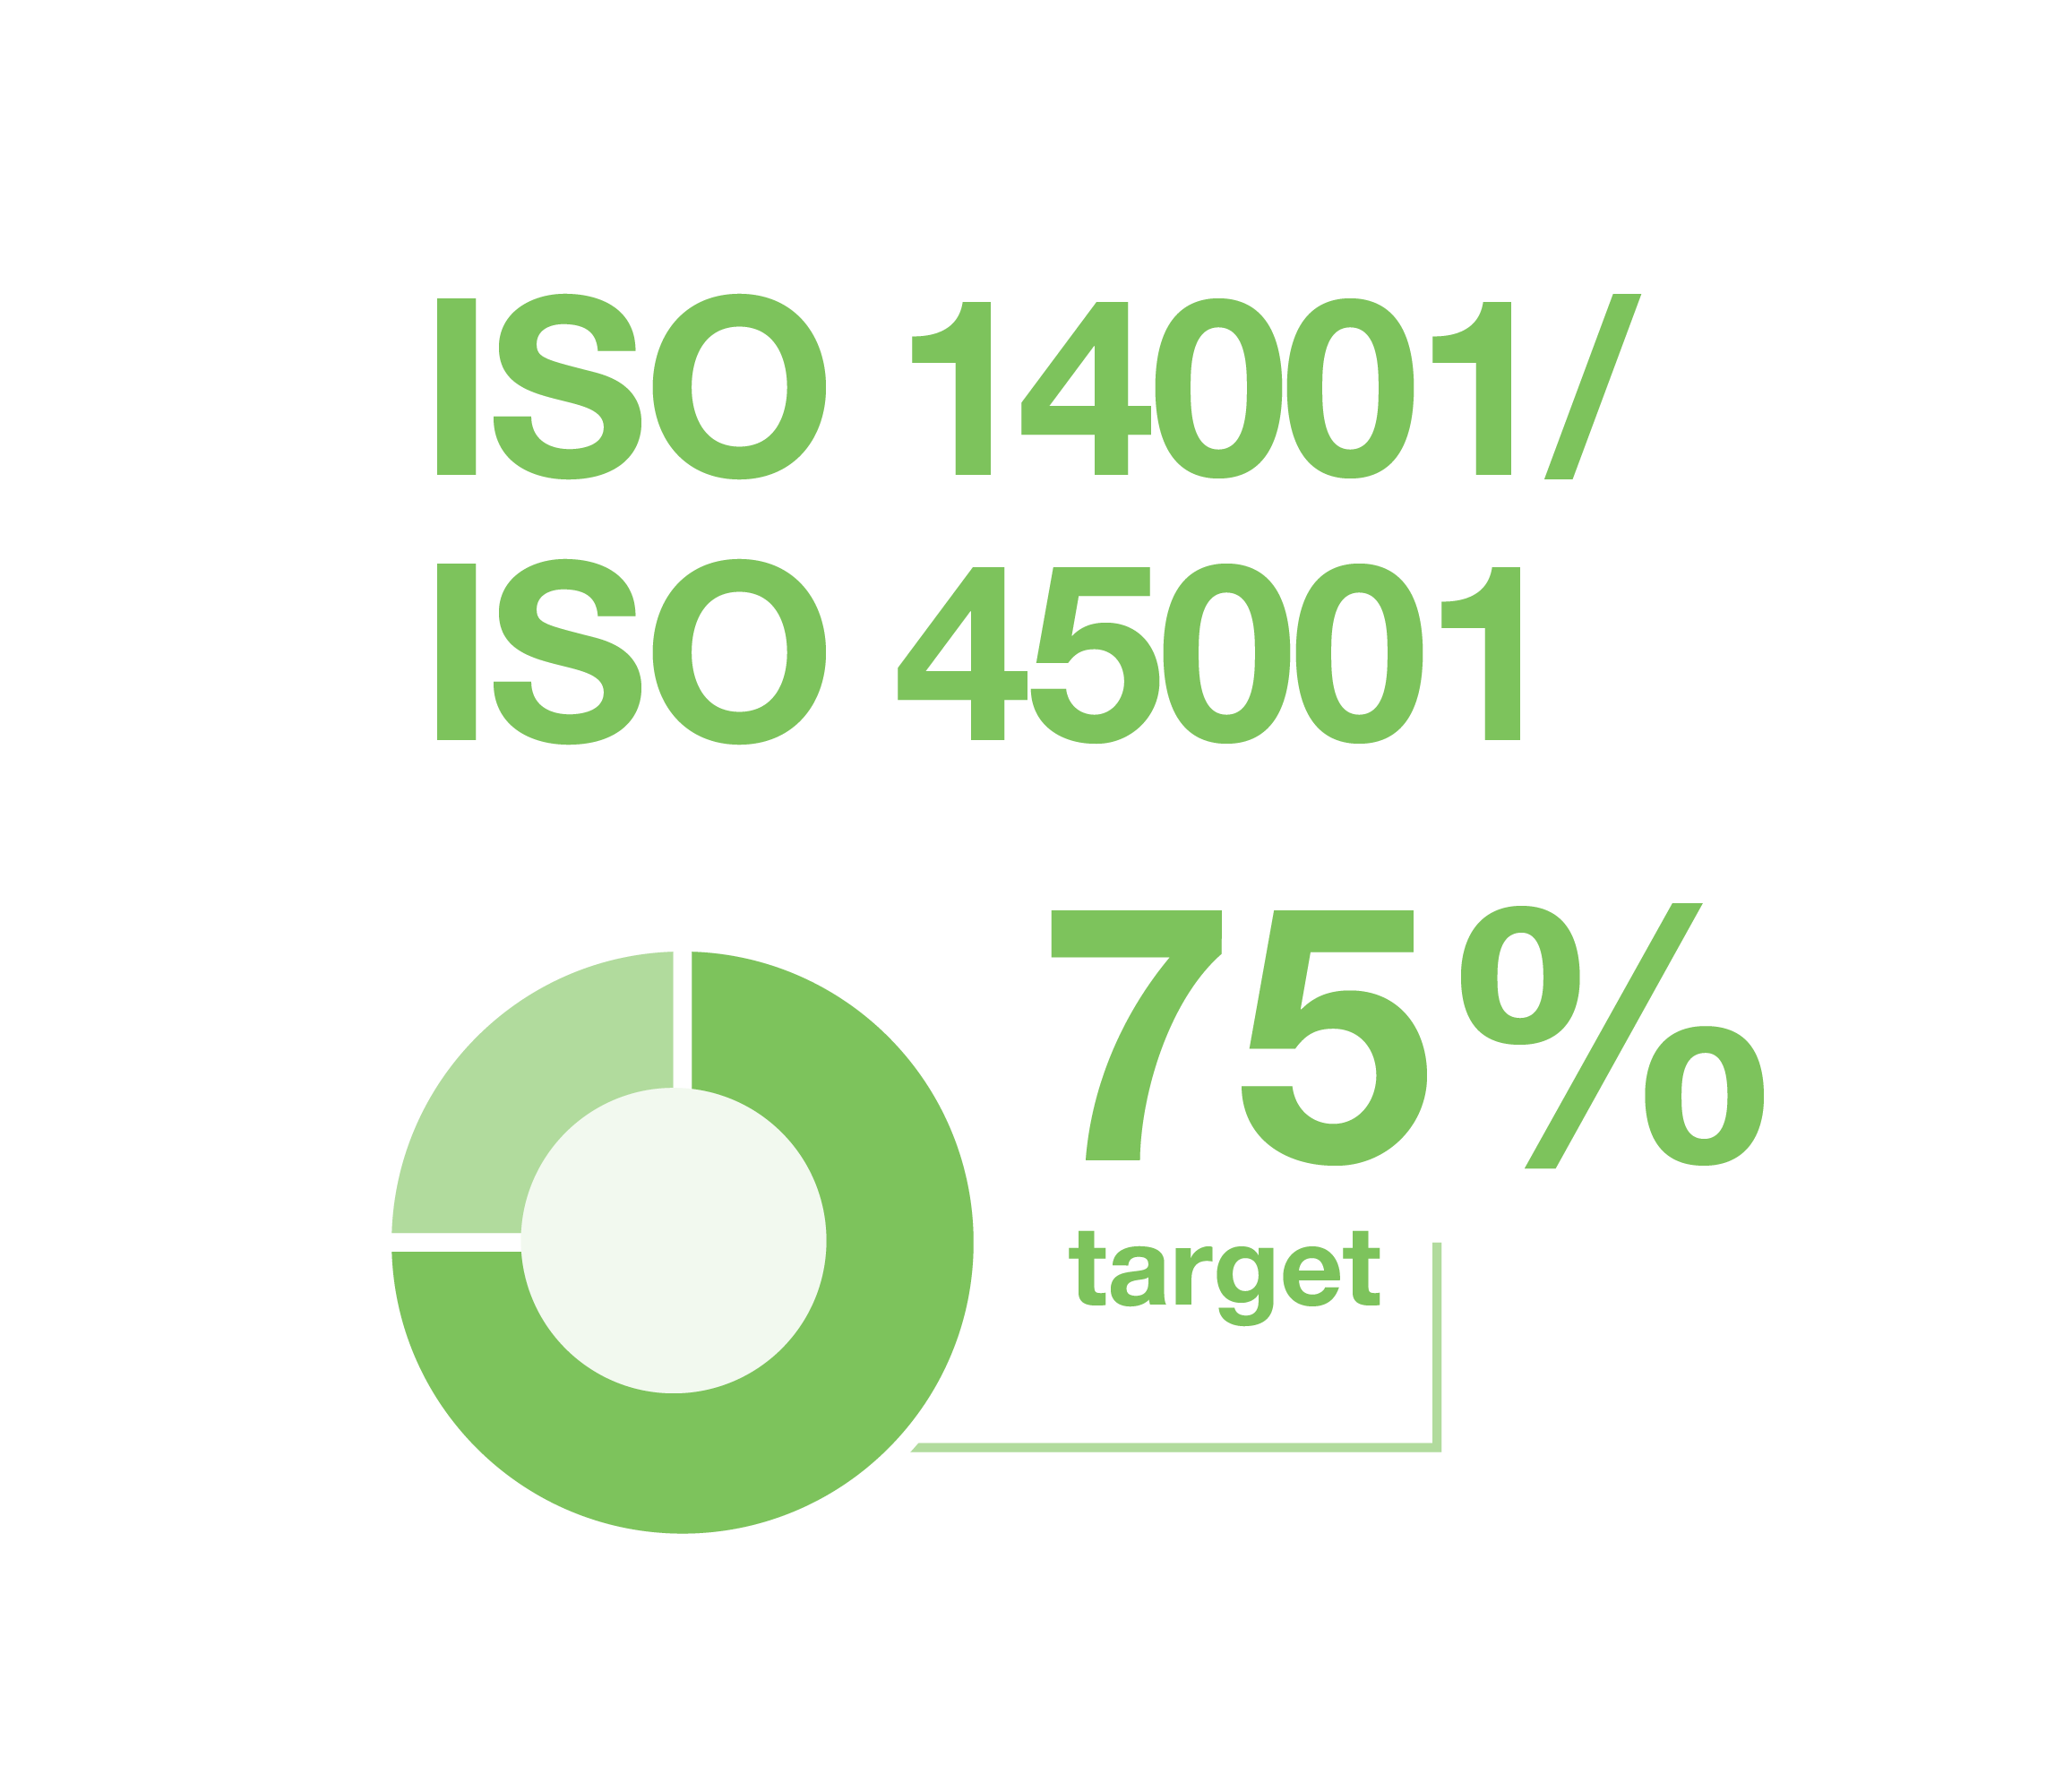 Illustration: iso 14001 and iso 45001 with a target of 75 percent